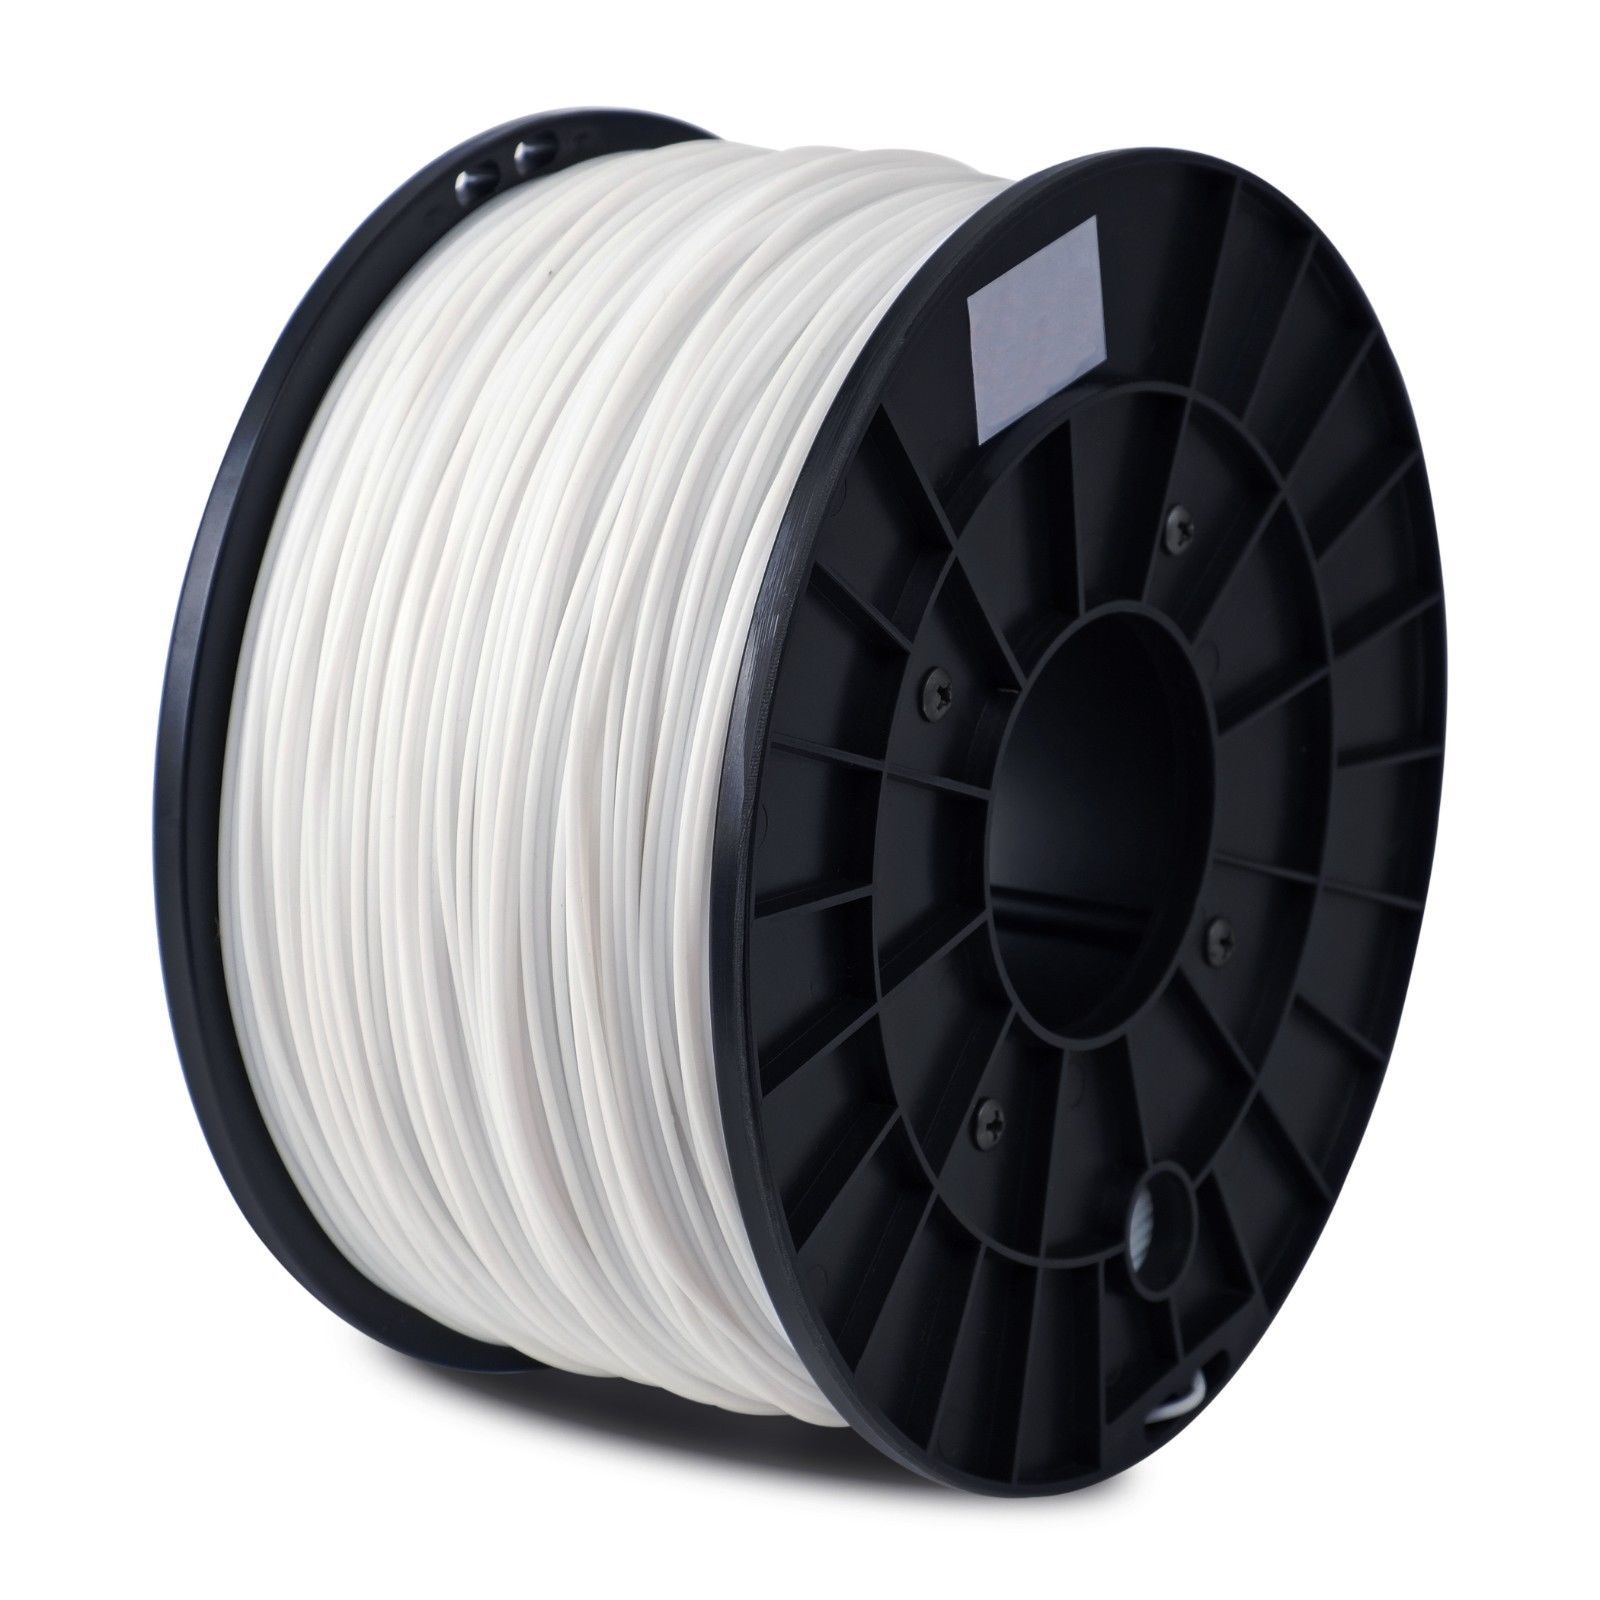 SHOP 3D Supplies ABS White 1.75mm 2.2 lb/1 kg Filament Printing Spool Supply for FlashForge Creator Series (PRO, X, Wood) & Fused Filament Fabrication (FFF) Printers, Reprap, Mendel, Prusa, Makerbot